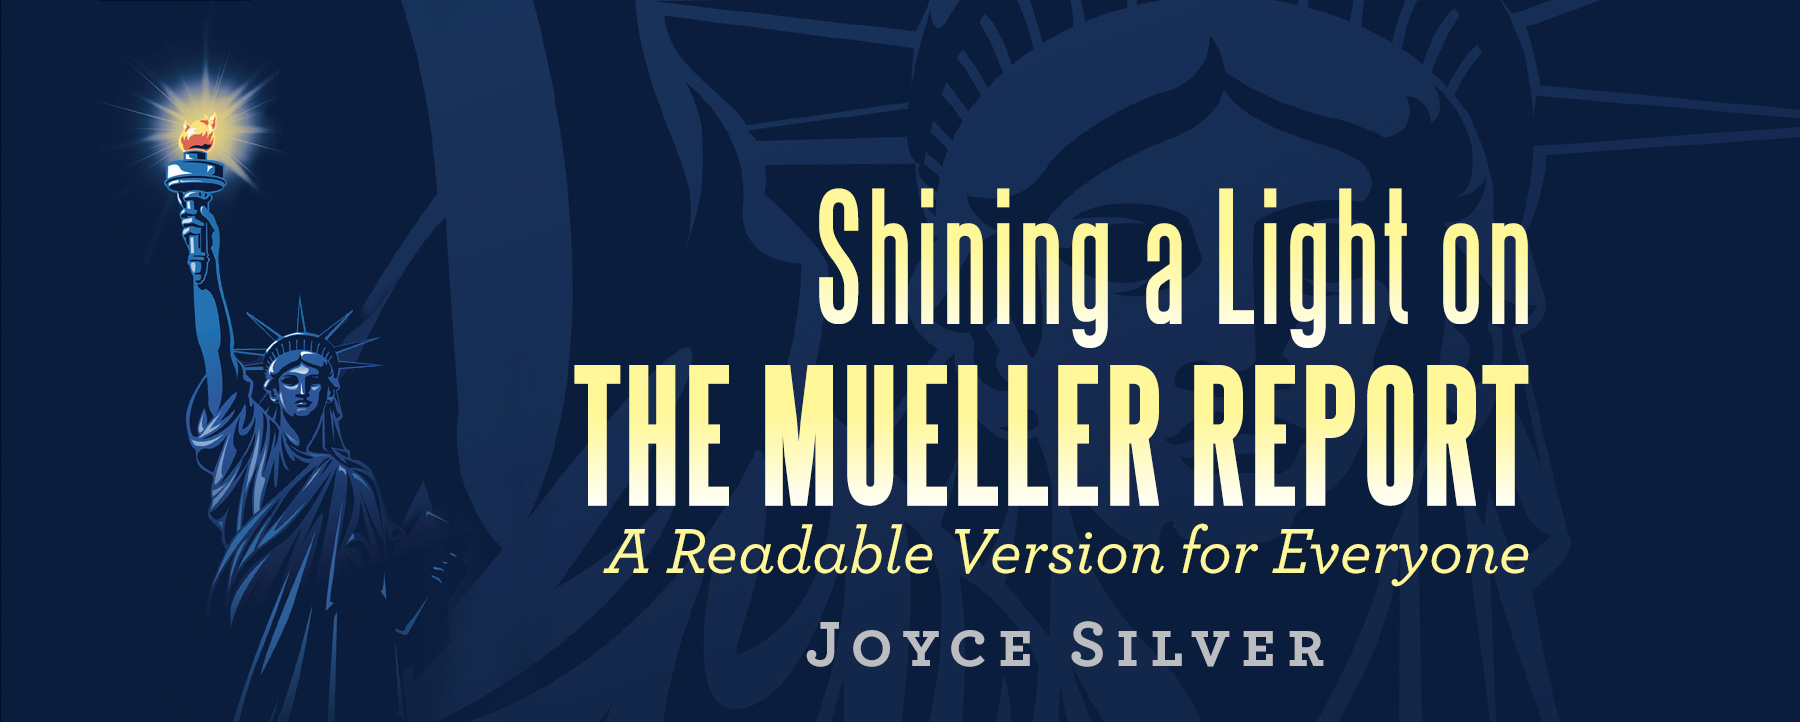 Shining a Light on THE MUELLER REPORT